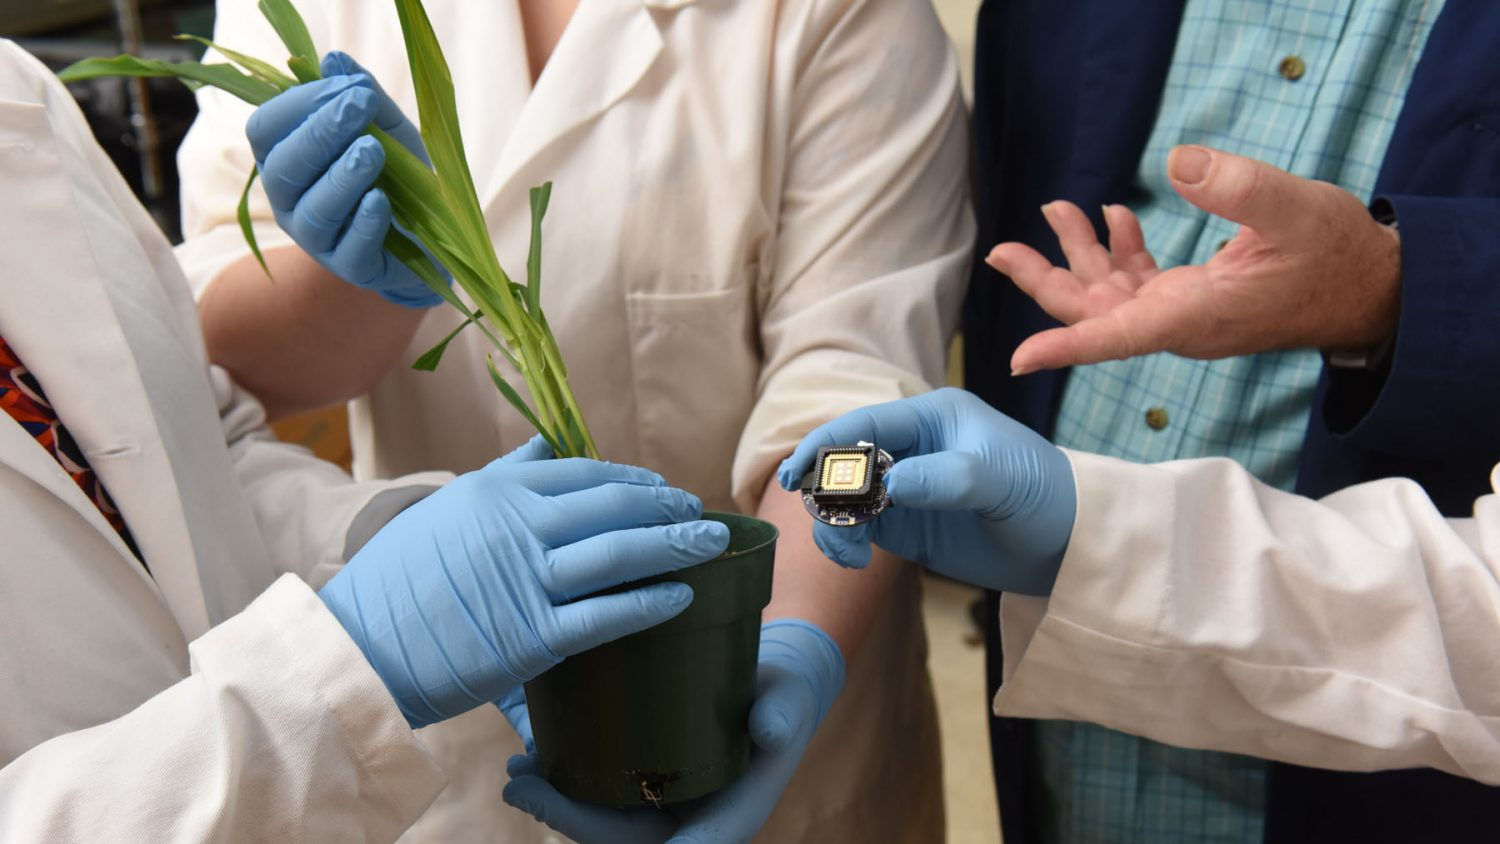 Scientists placing a sensor into a plant pot